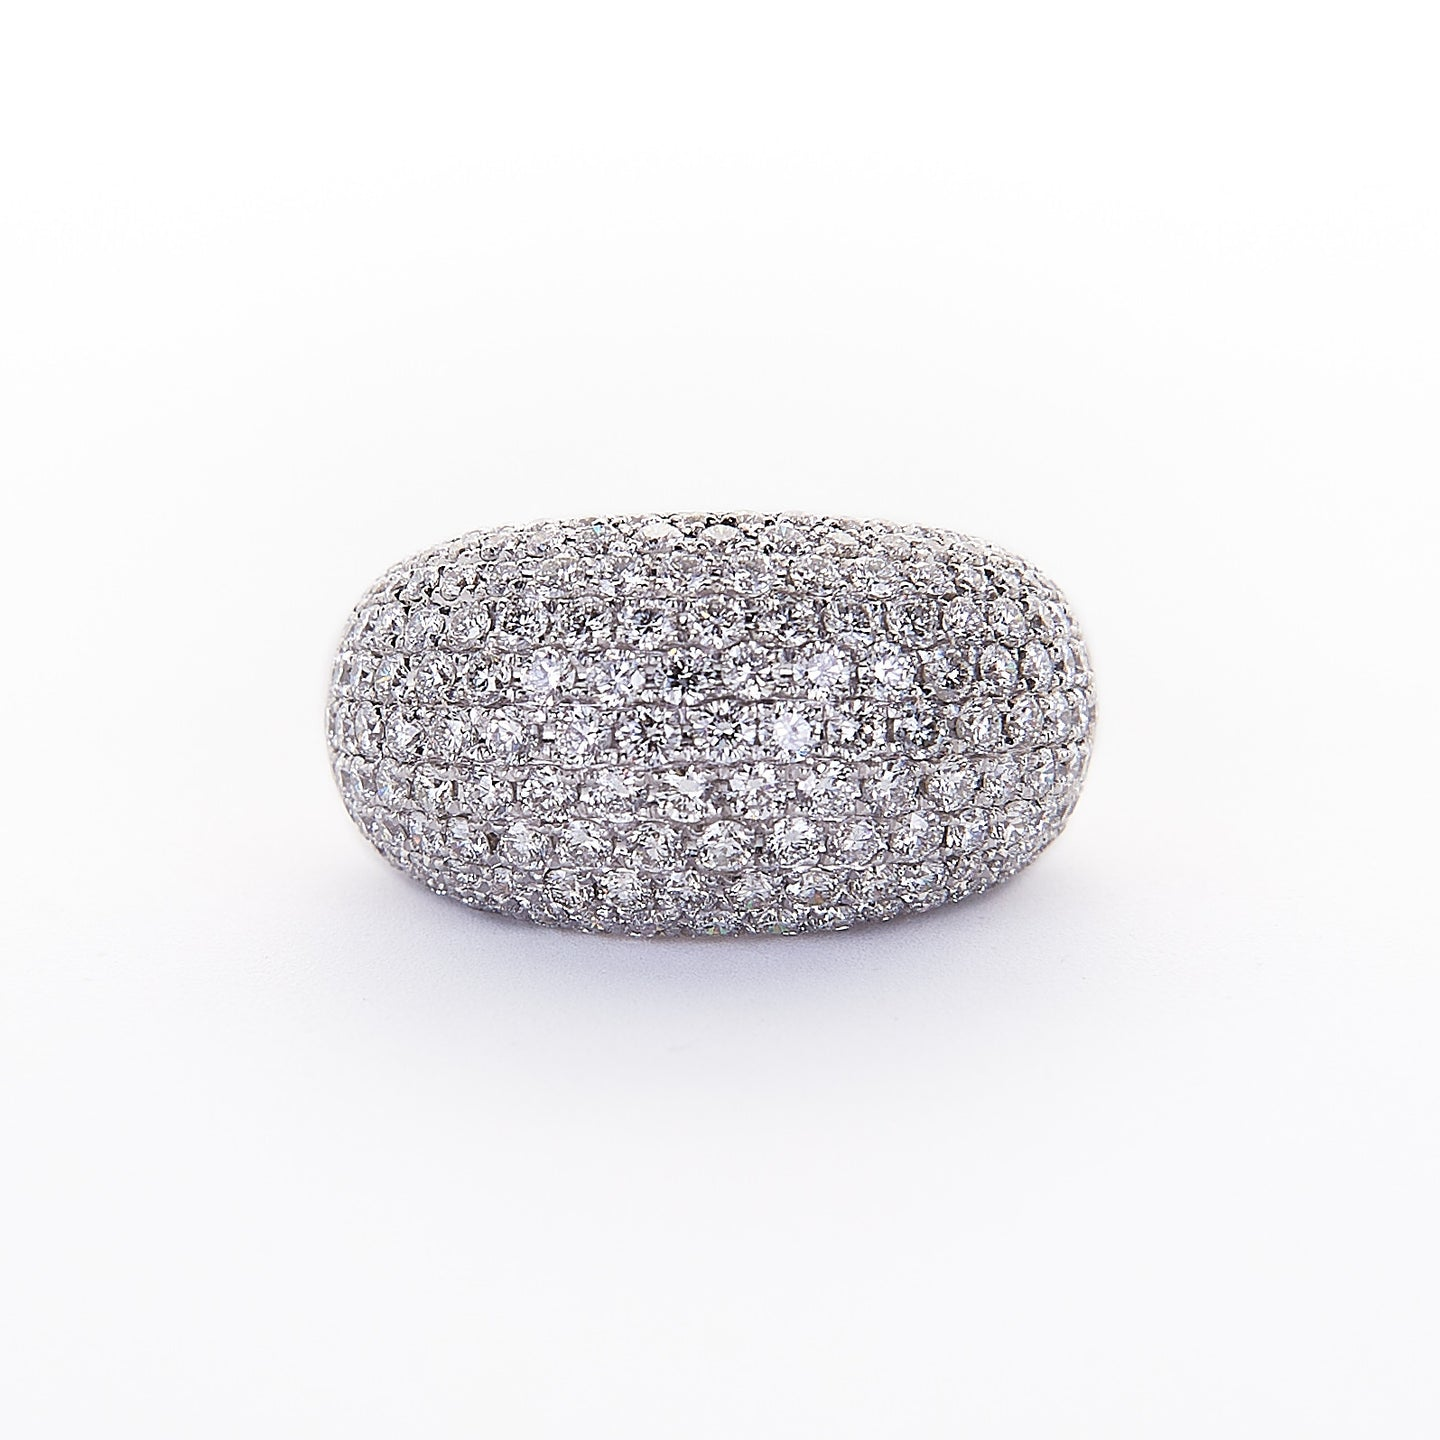 The Susan - 18K White Gold and Pave Dome Diamond Ring